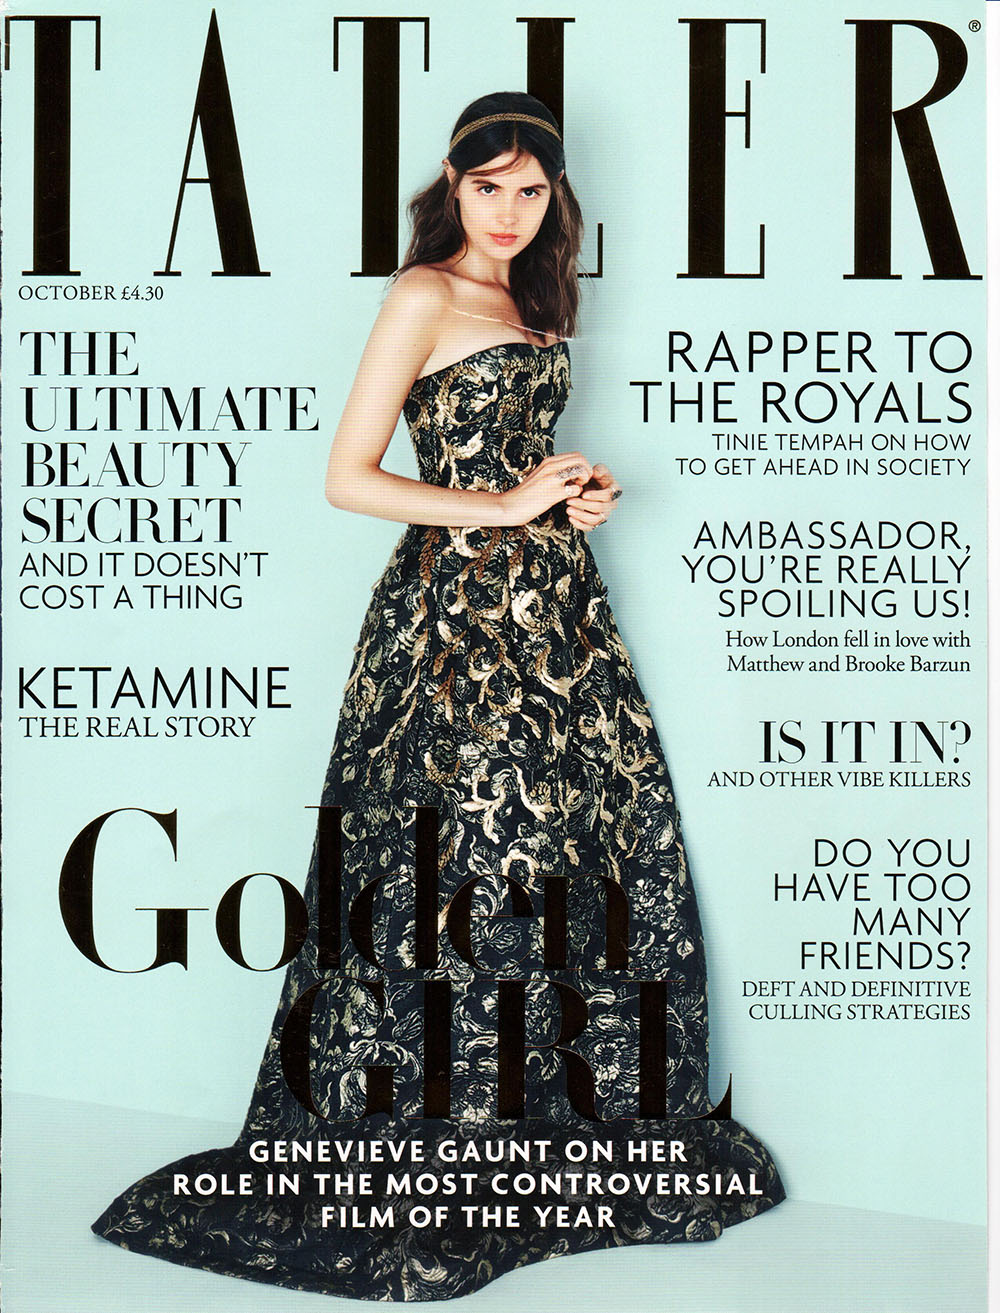 Tatler Oct 2014 cover.jpg